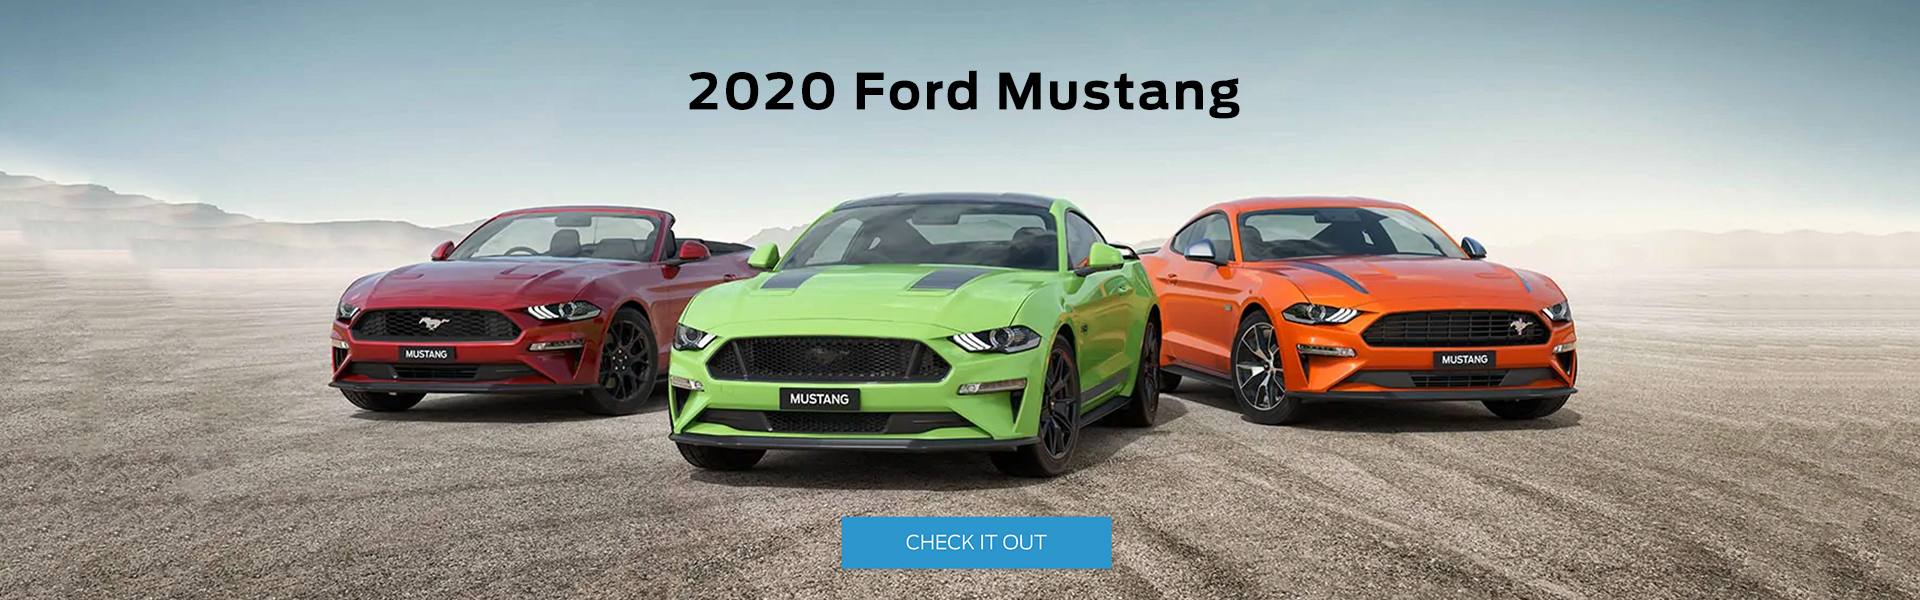 See the full range of Ford Mustang models at Alpine Ford